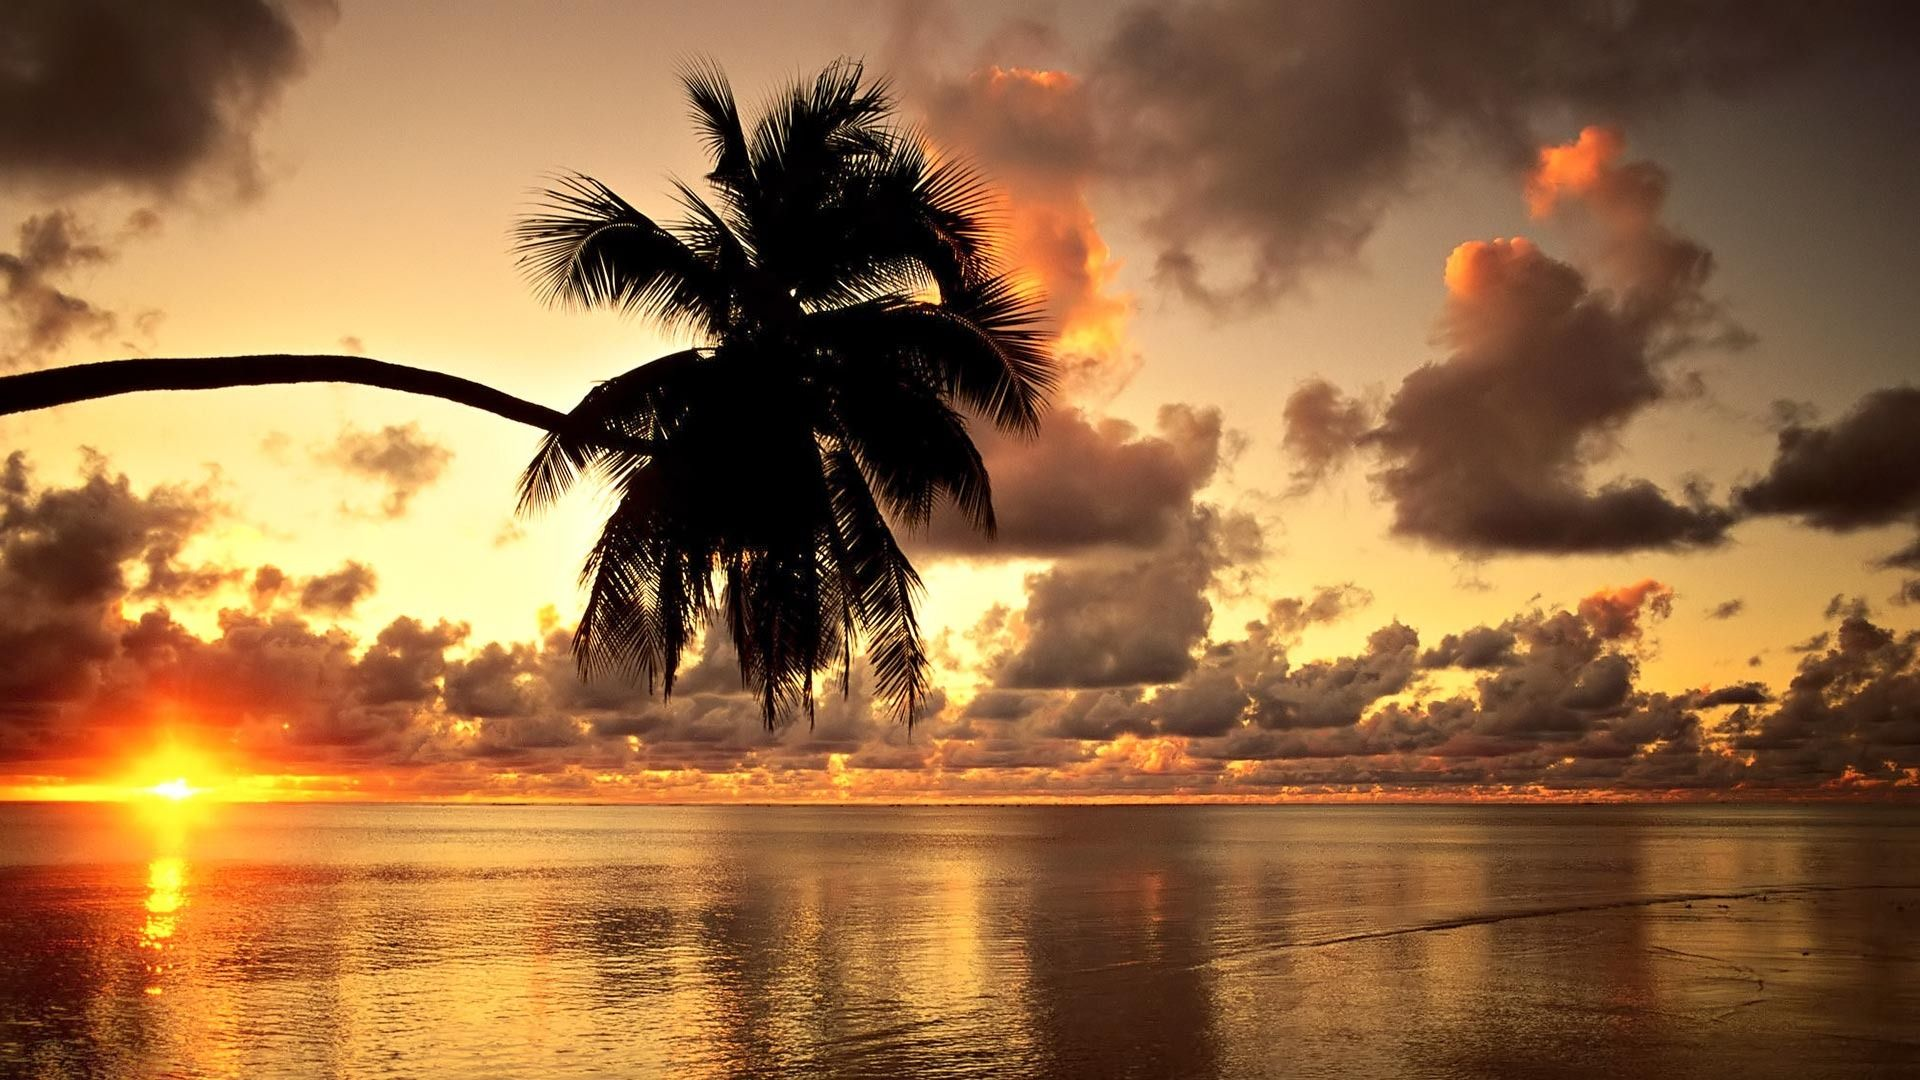 Hawaiian Sunset Hd Beach Wallpapers 1080p HD Pic